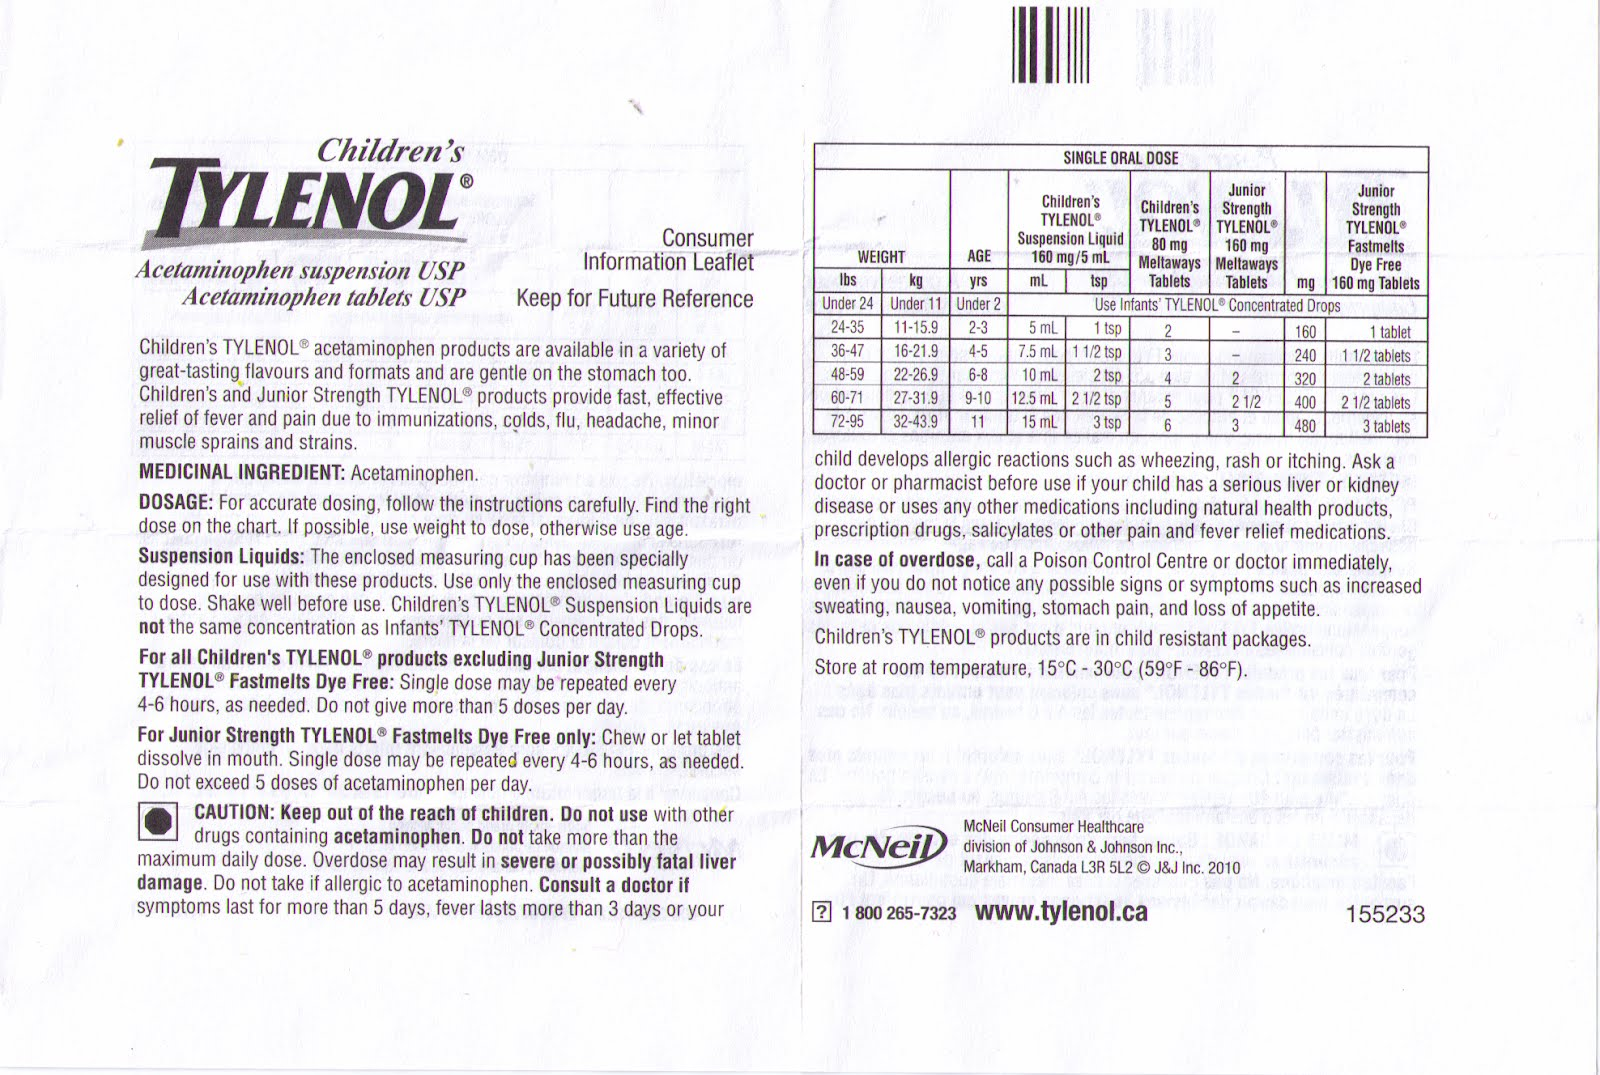 Mba4rent how big is your child will tylenol have to adjust this chart again some time soon probably but it makes me wonder what the chart looks like in markets outside north america nvjuhfo Image collections